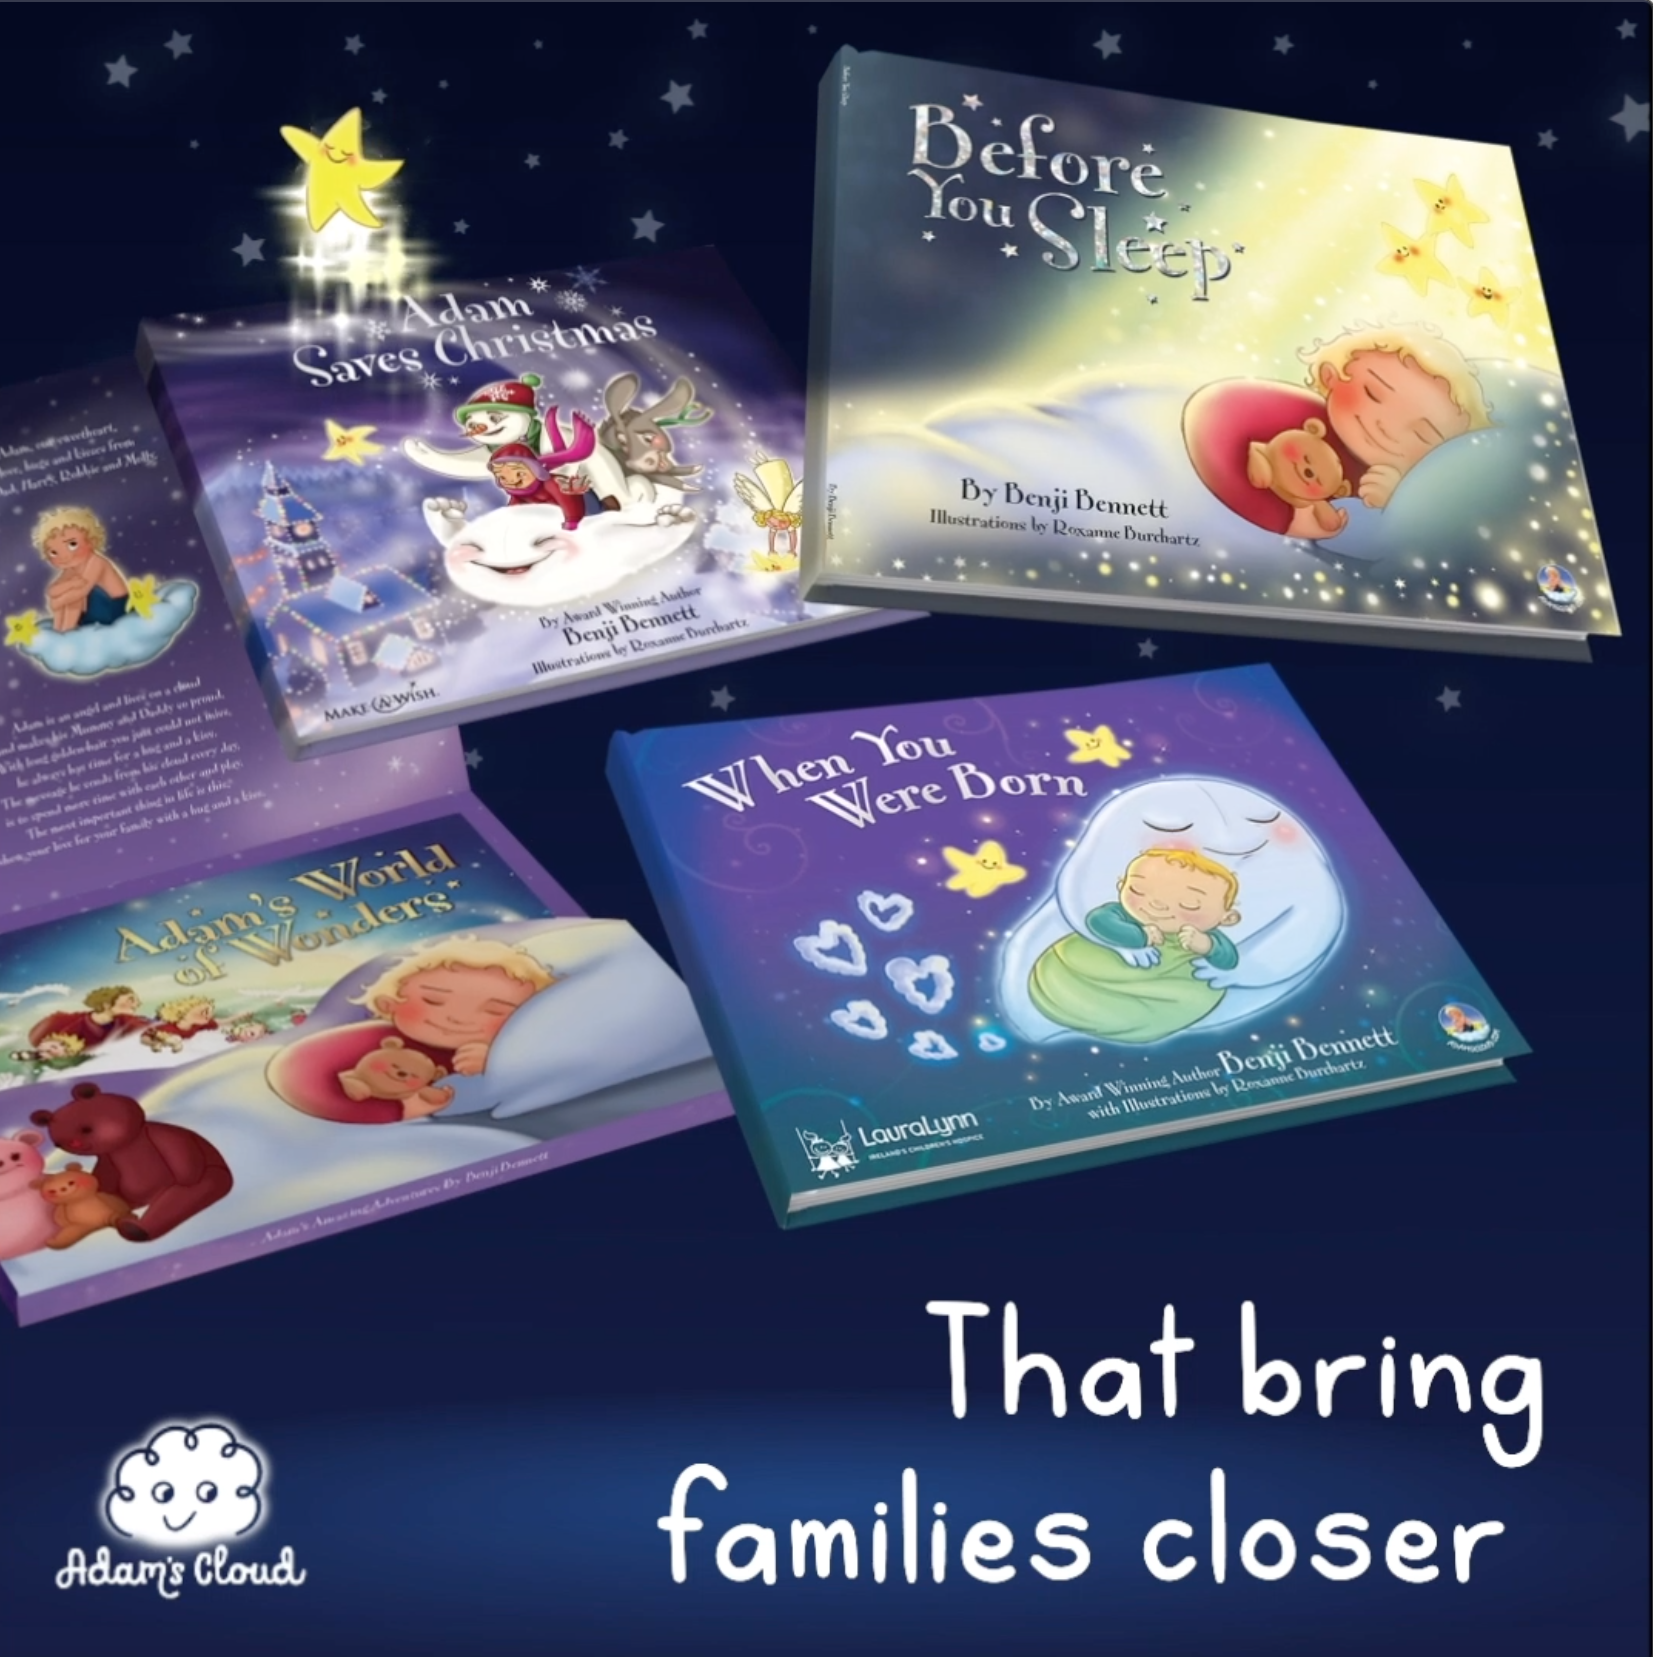 Books Full of Love that Bring Families Closer